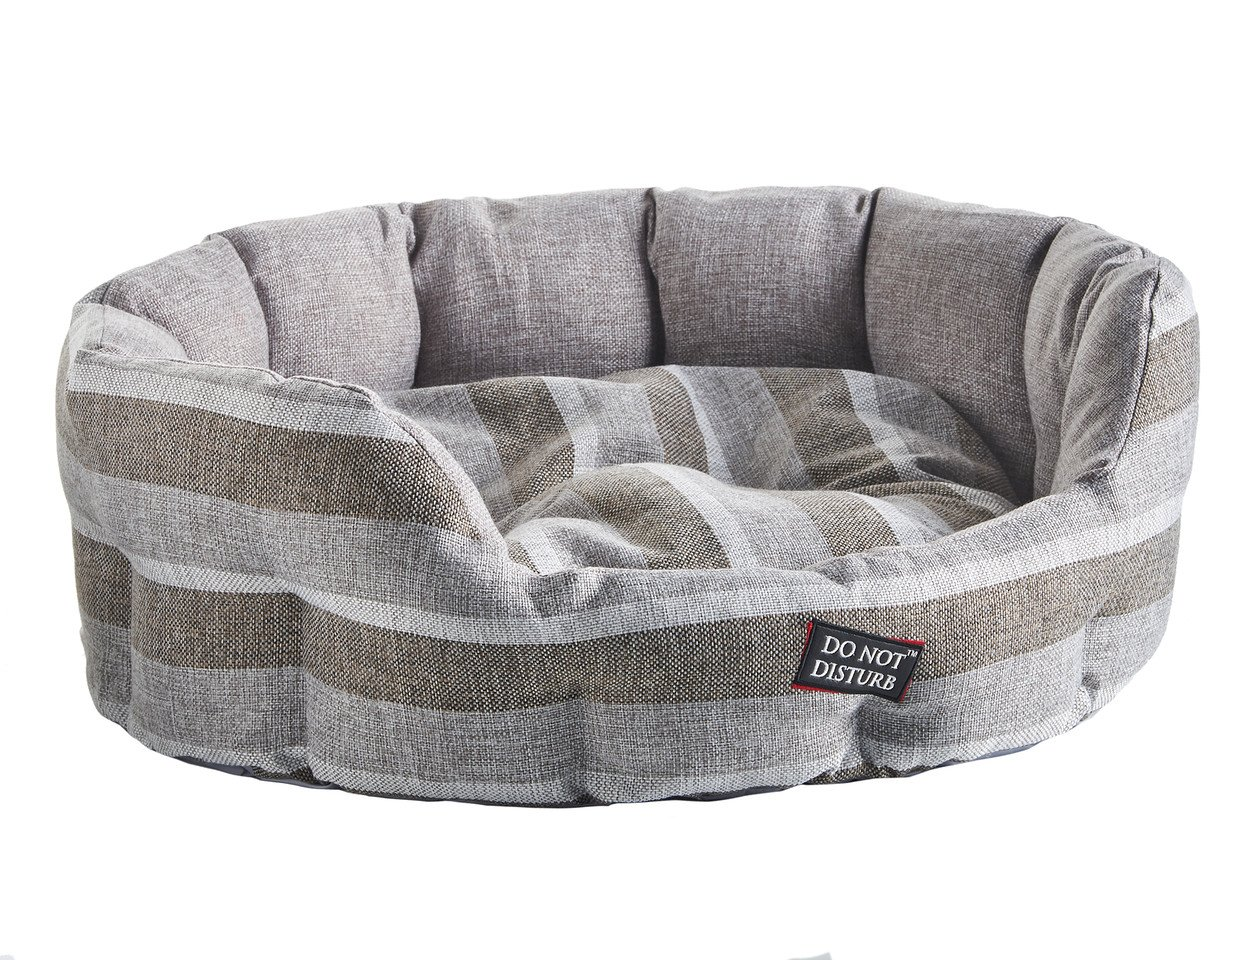 Do Not Disturb Hundebett, oval, 71 cm, gestreift, grau